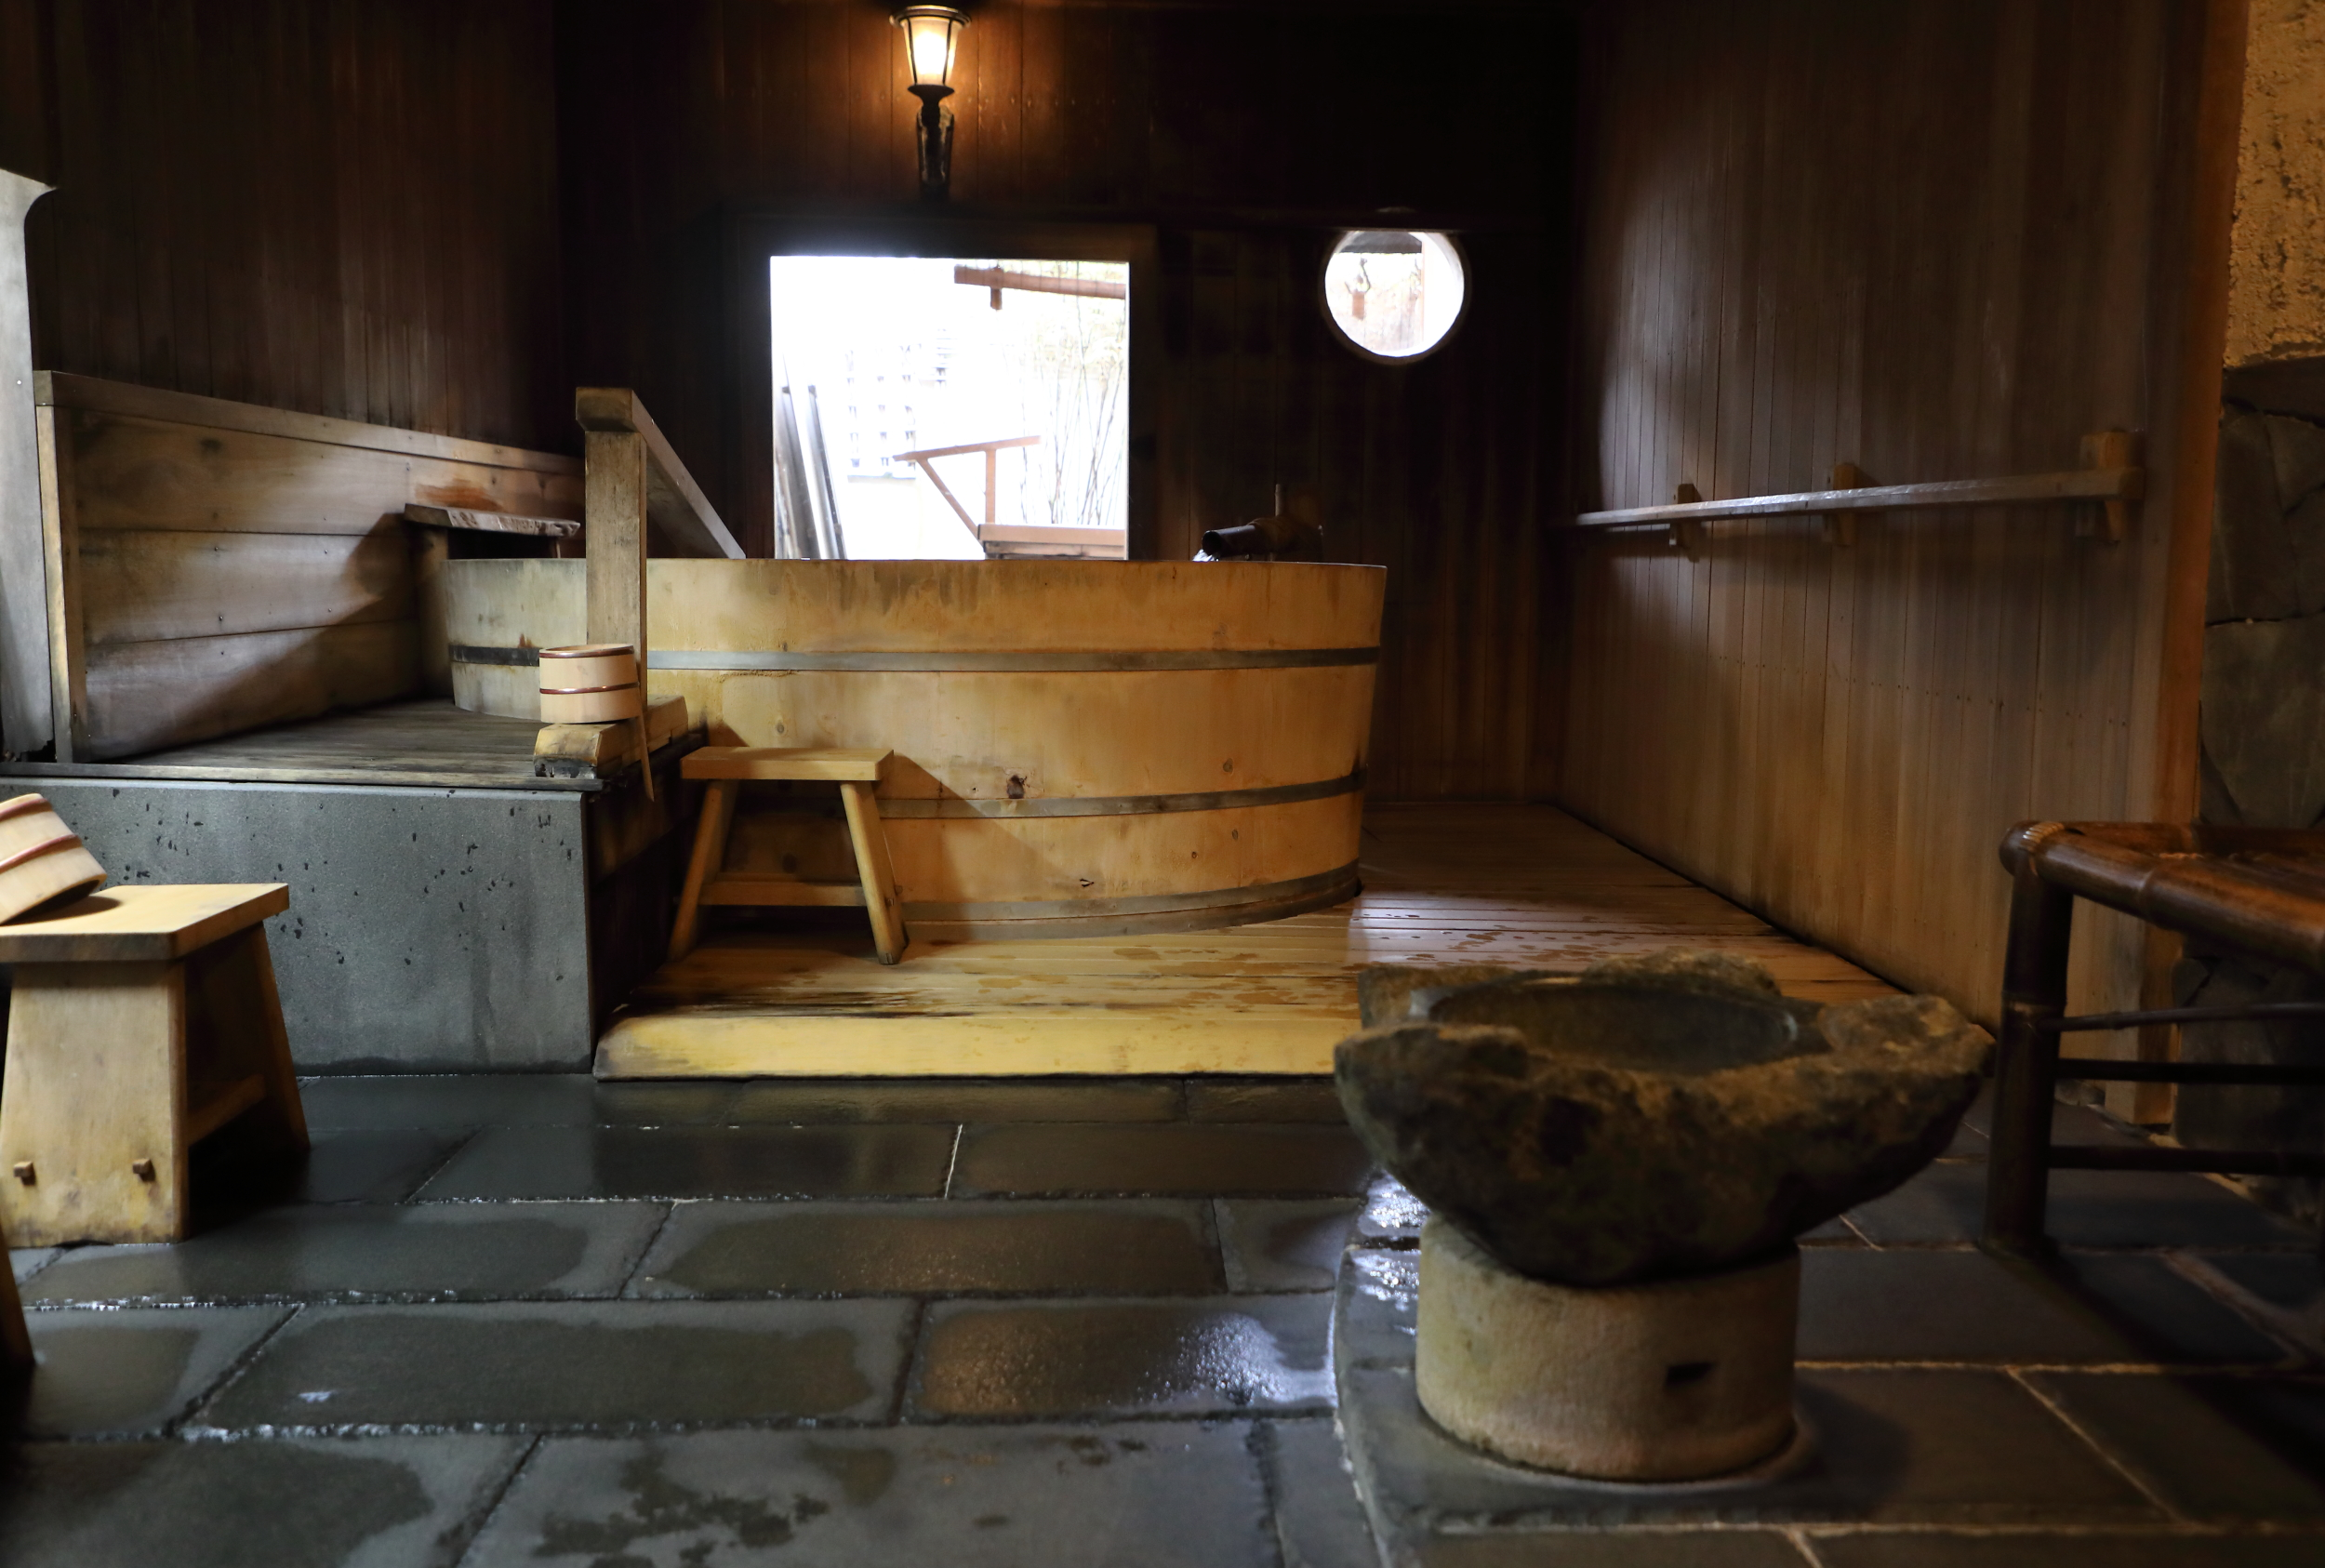 Use of the two communal baths at the inn is alternated between men-only and women-only in the morning and evening so that guests have a chance to enjoy both the large wooden tub in one and stone basin in the other.